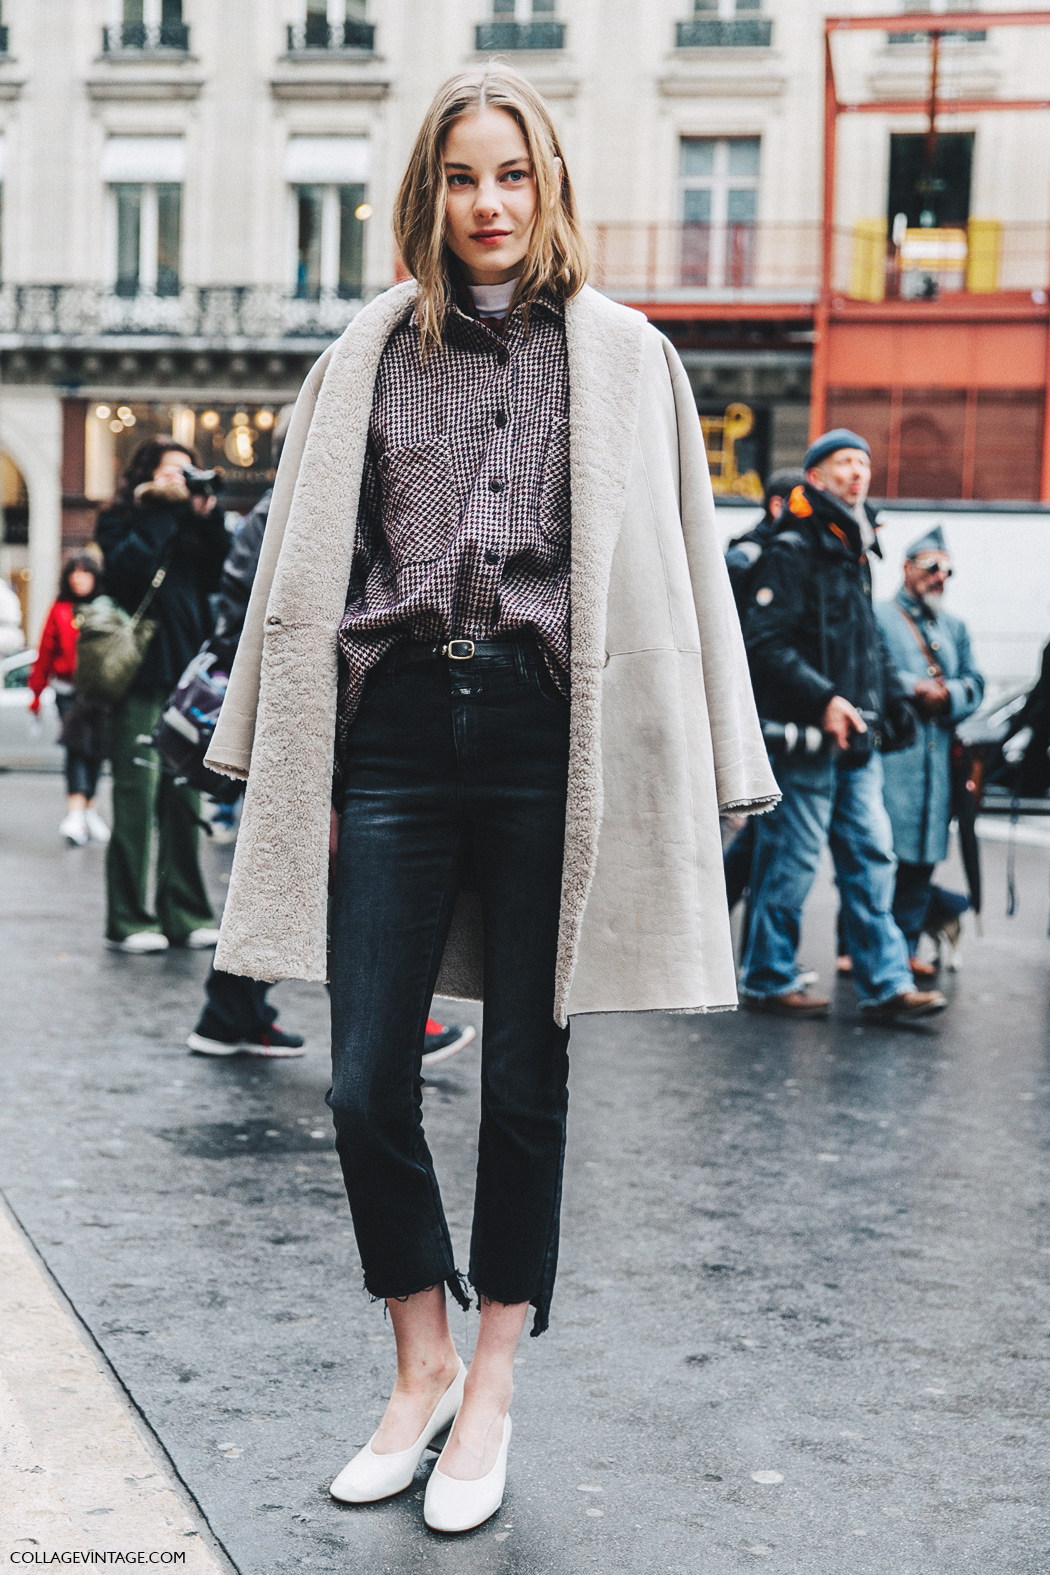 How to Wear Black Raw-Hem Jeans for Fall – Street Style Outfit Inspiration